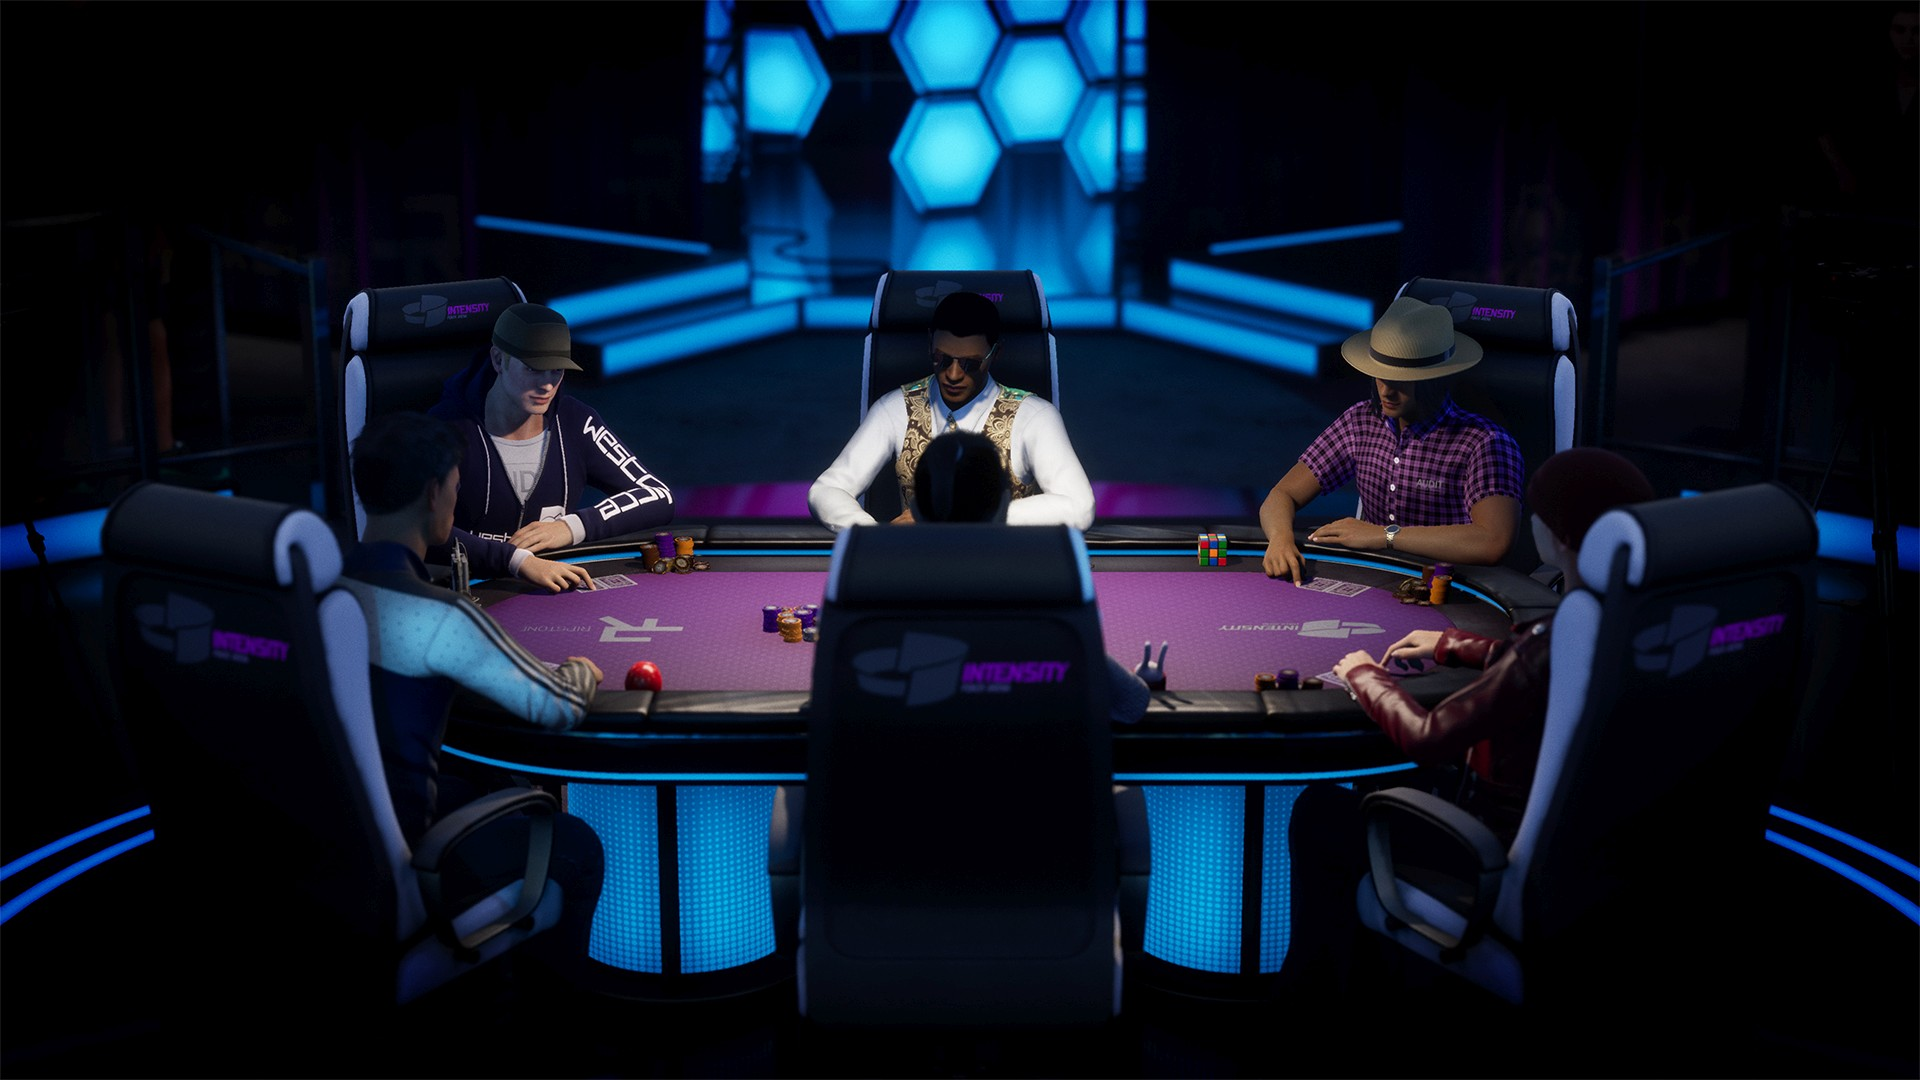 The Largest Drawback In Online Gambling Comes